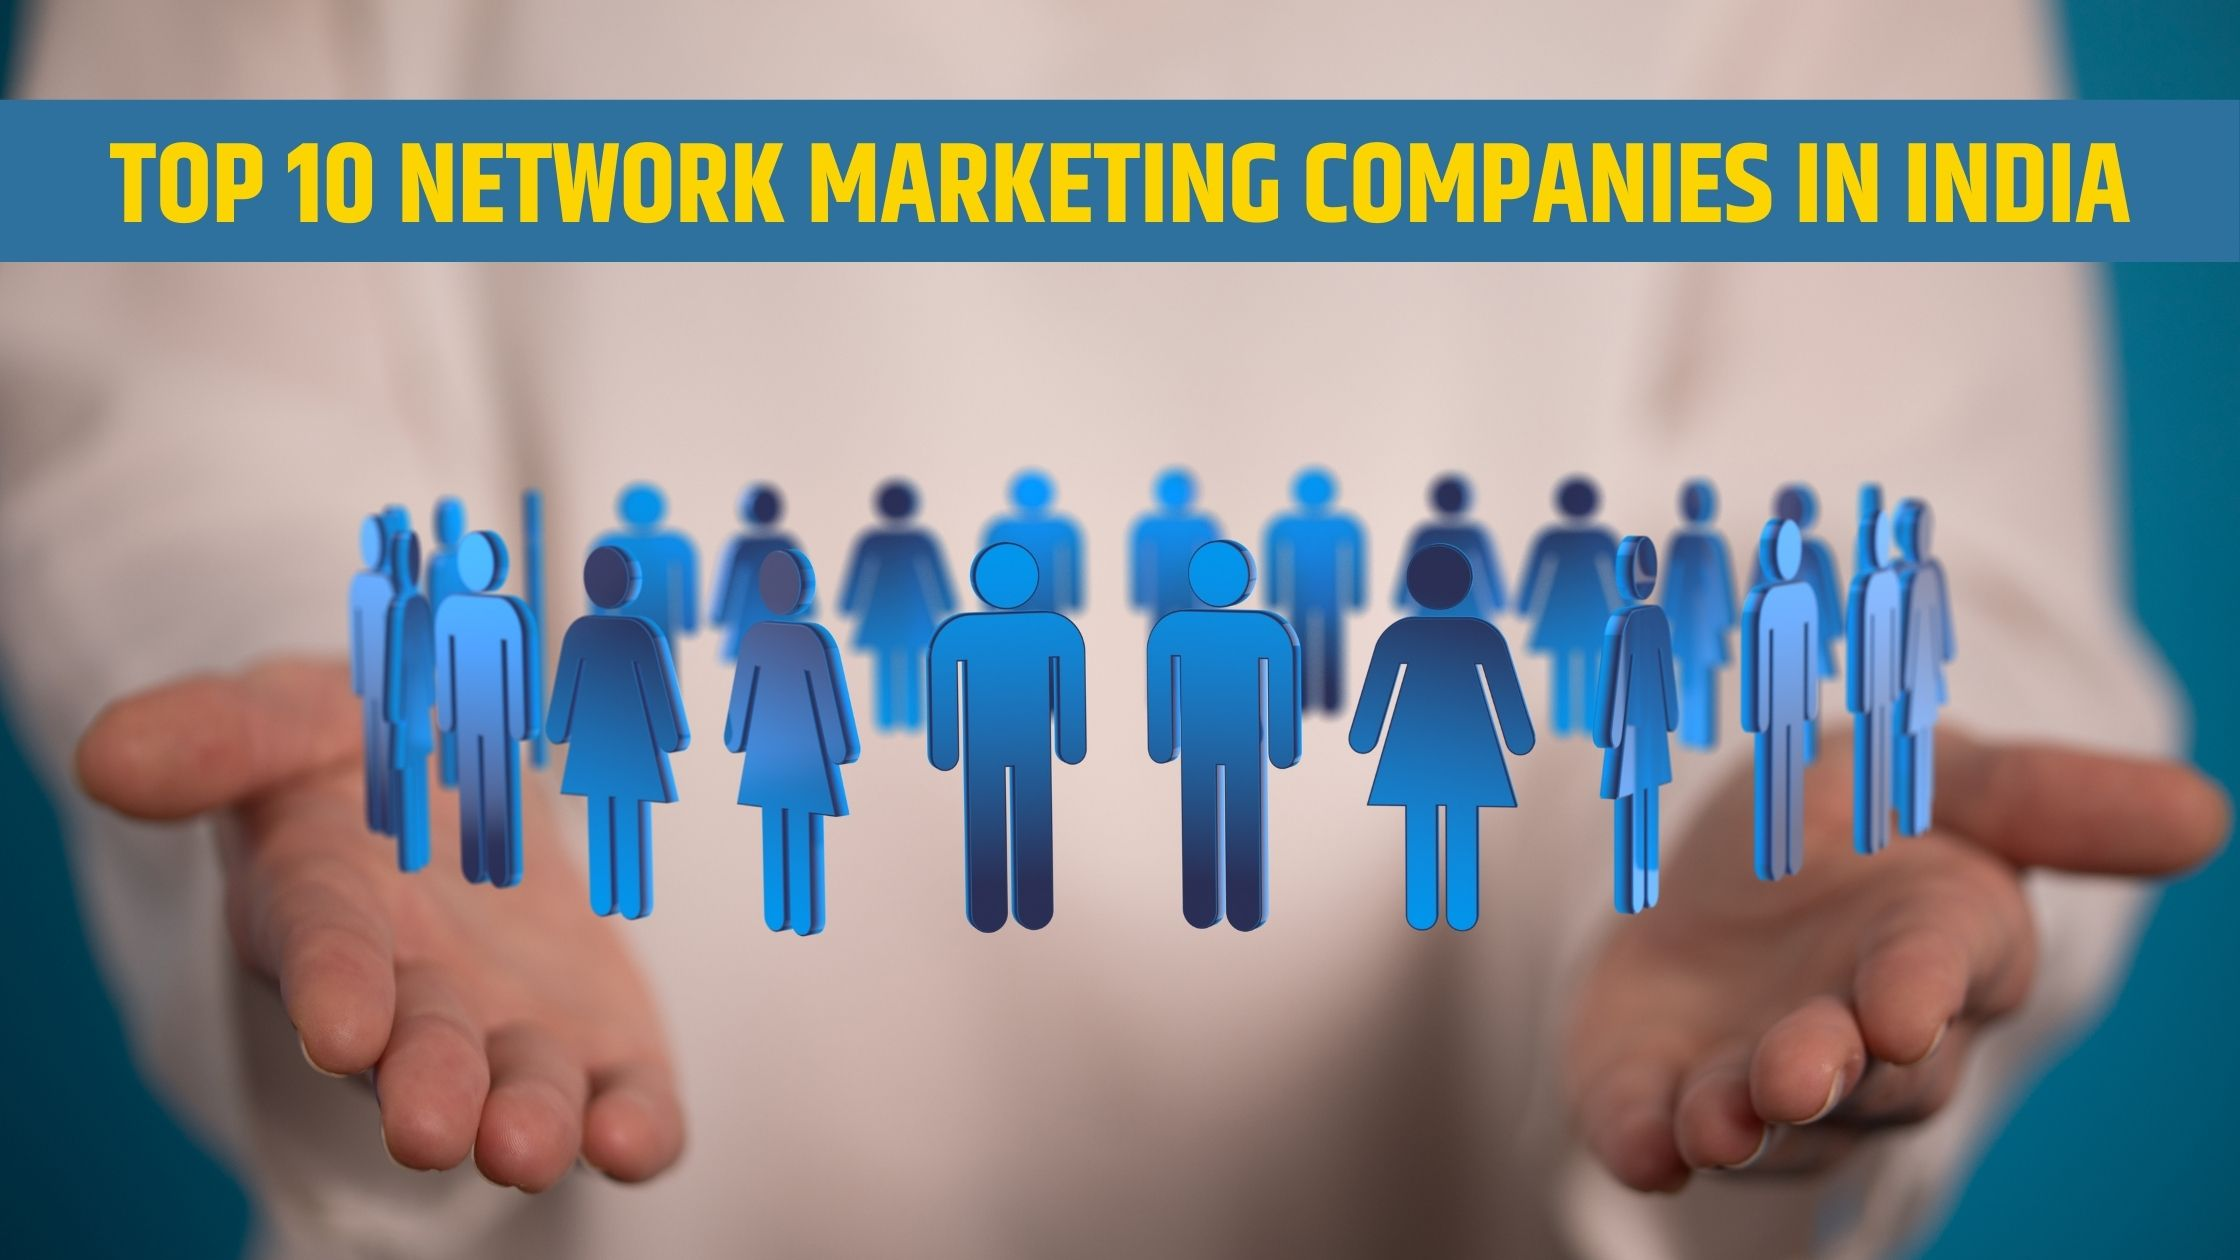 Top 10 Network Marketing Companies In India